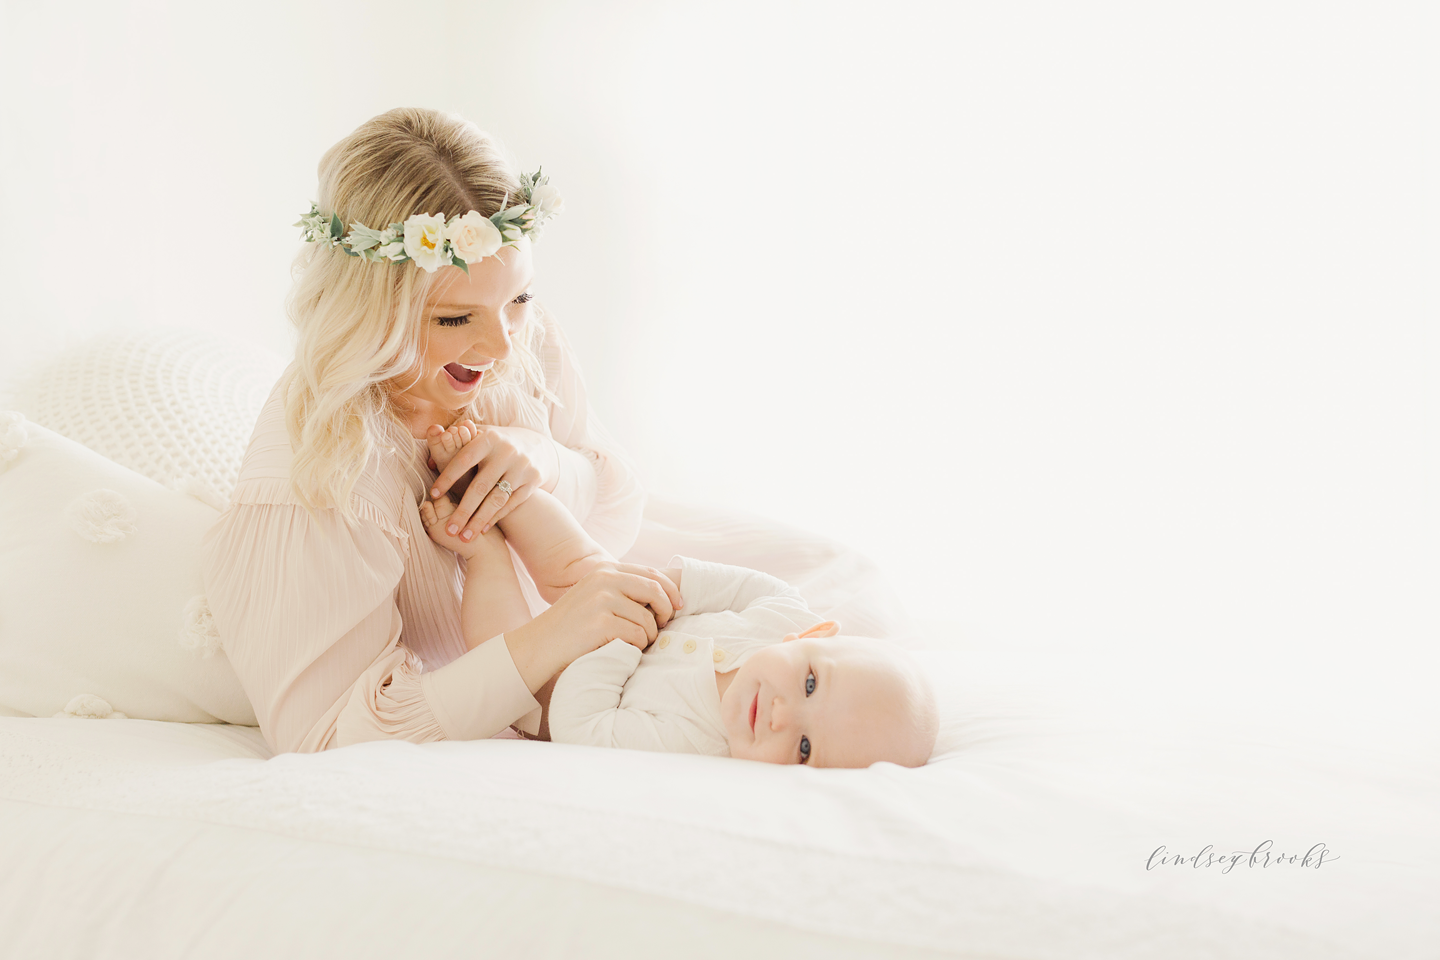 oklahoma-city-photographers-newborn-baby-motherhood-six-months-infant-child-family-photos-portraits-studio-simple-natural-light-7.png